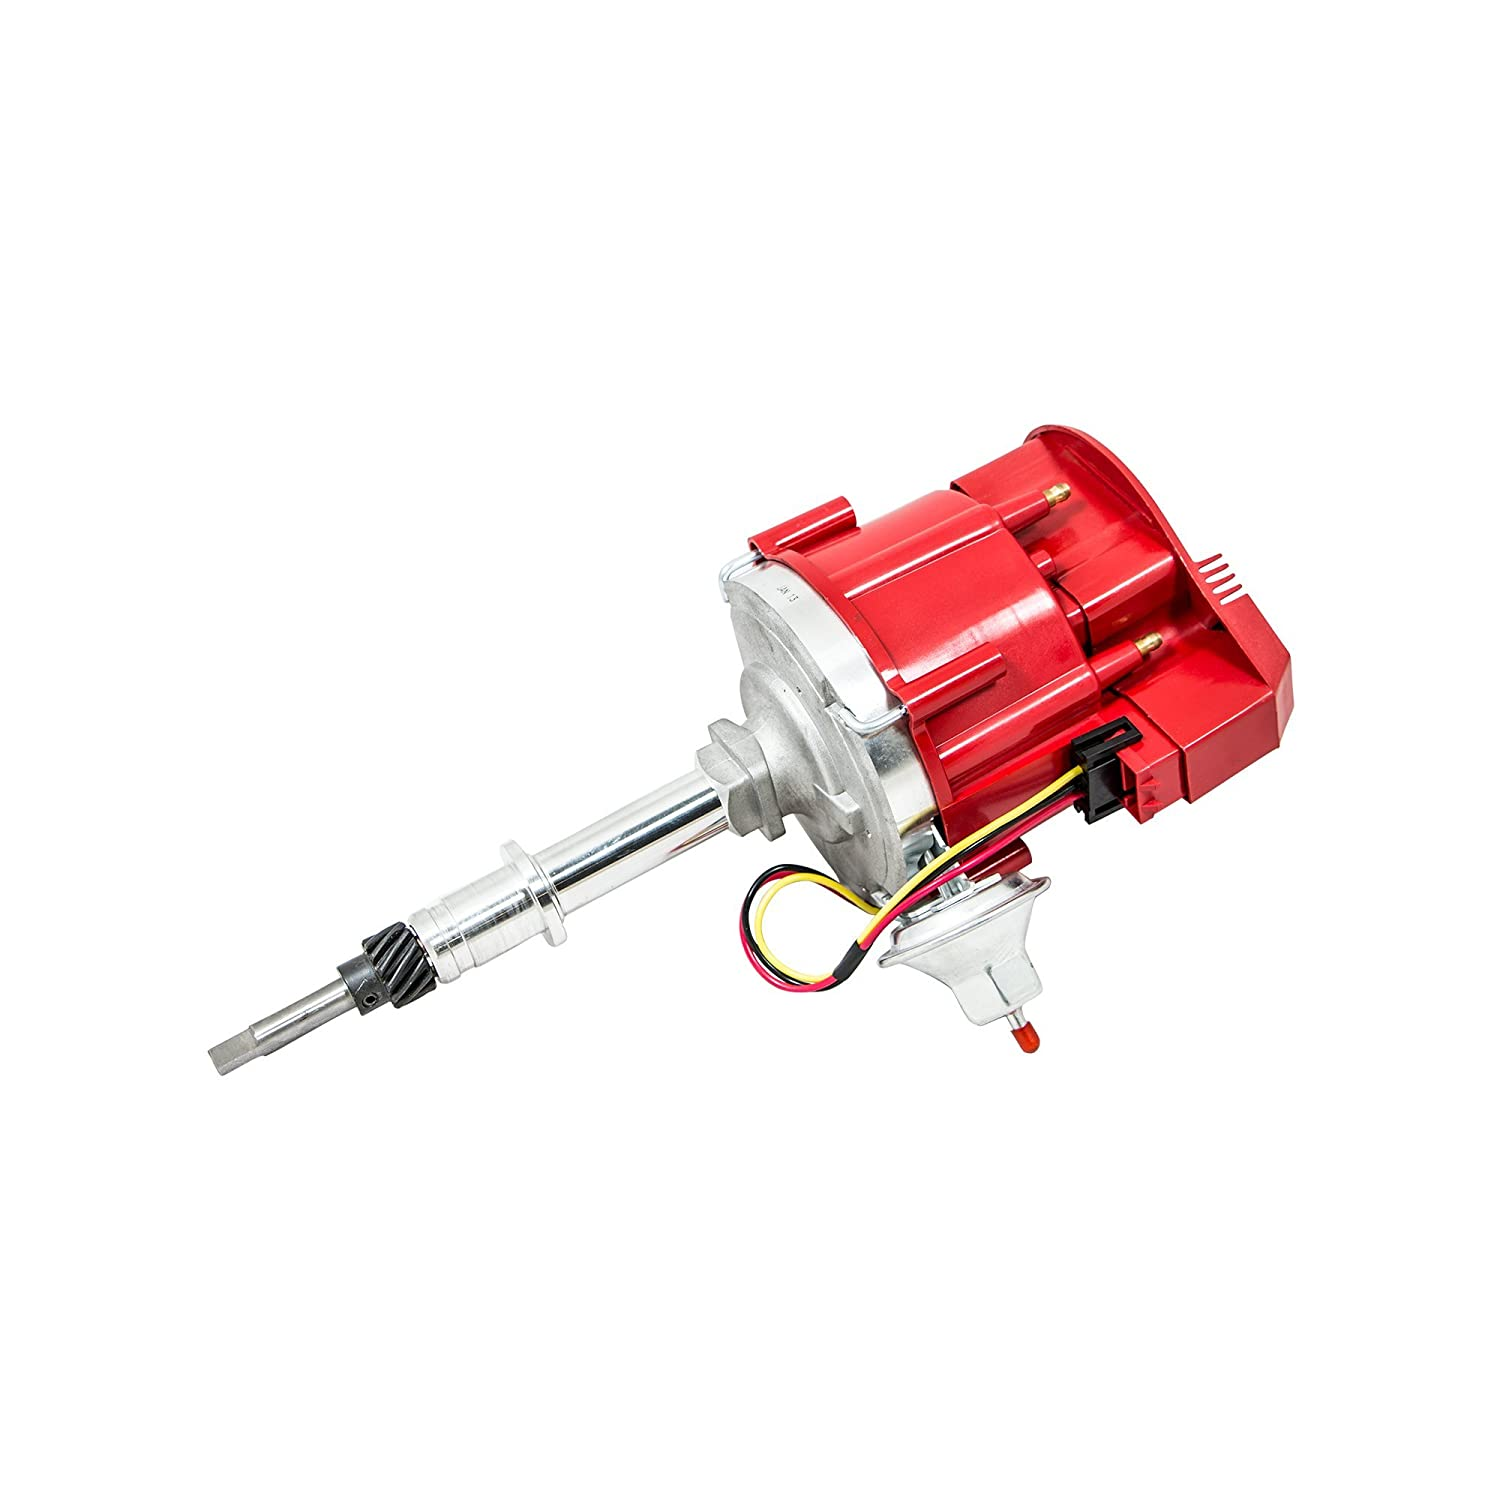 Top Street Performance Jm6522r Hei Distributor With Red Chevy Ignition Module Flat Cover Super Cap 65k Volt Coil Automotive